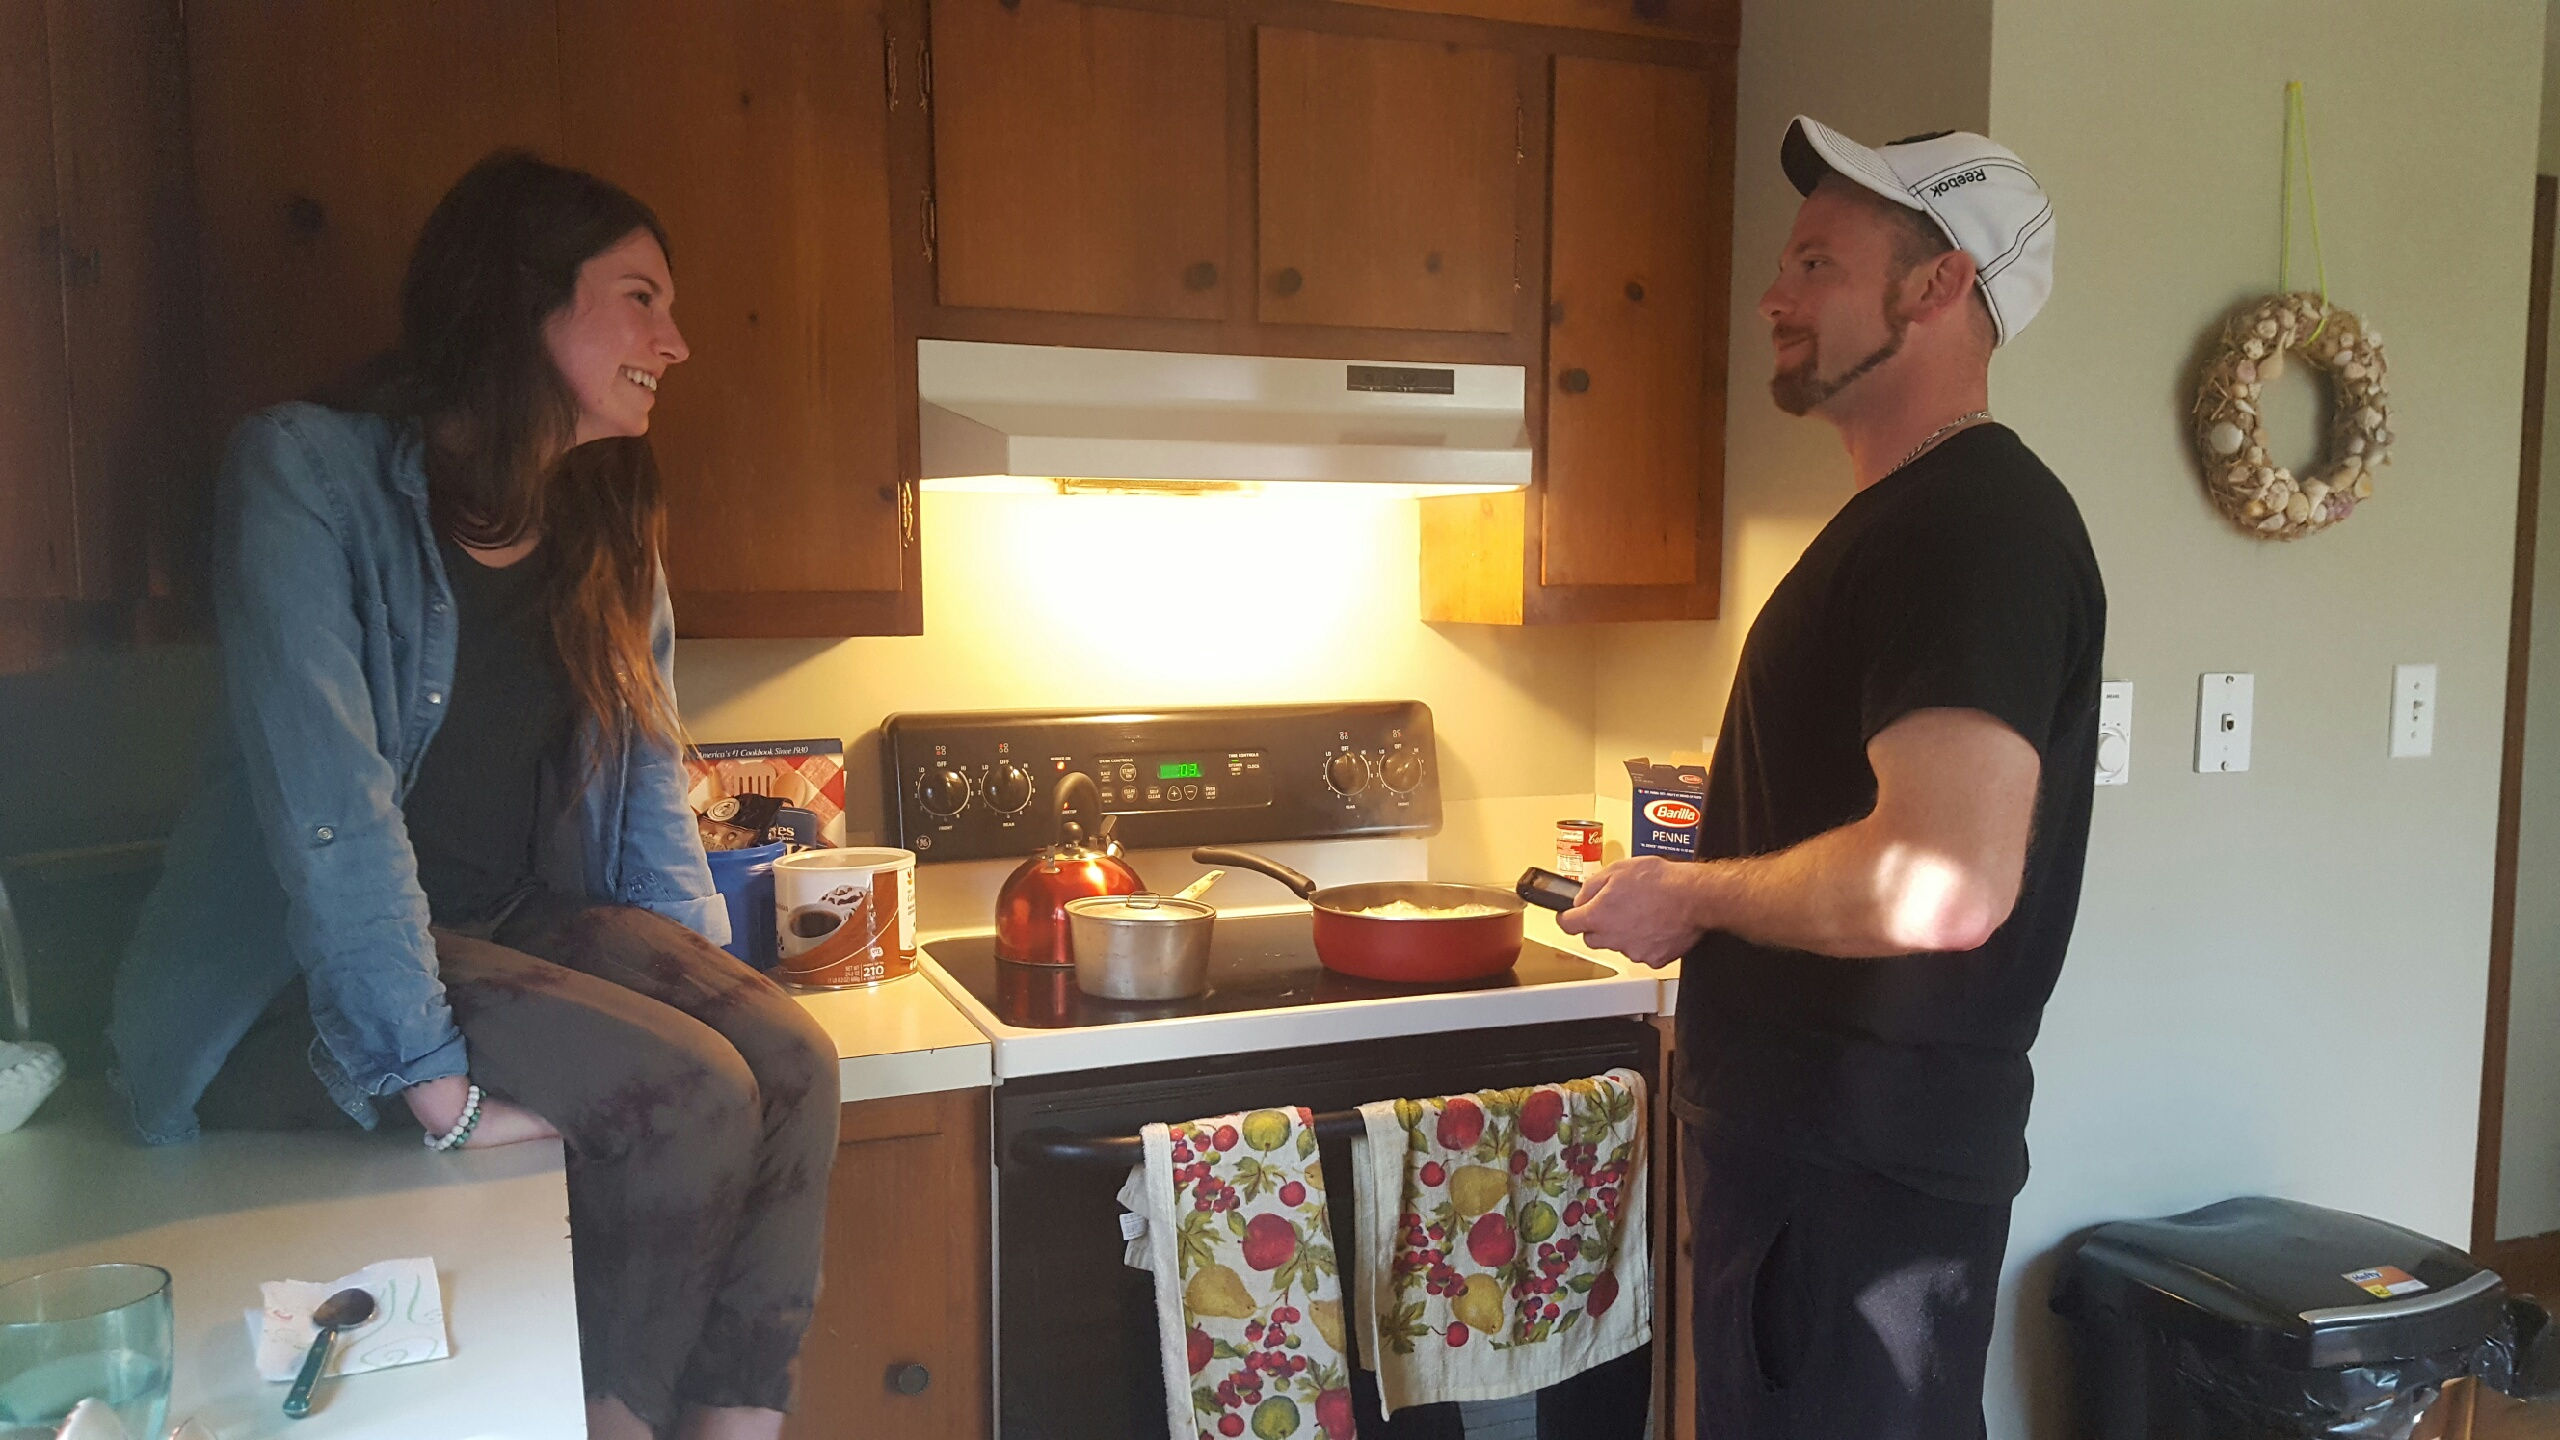 Caption: Jake Pickard and Marirose Lynch enjoy cooking together in his apartment, Credit: Elizabeth Nakano